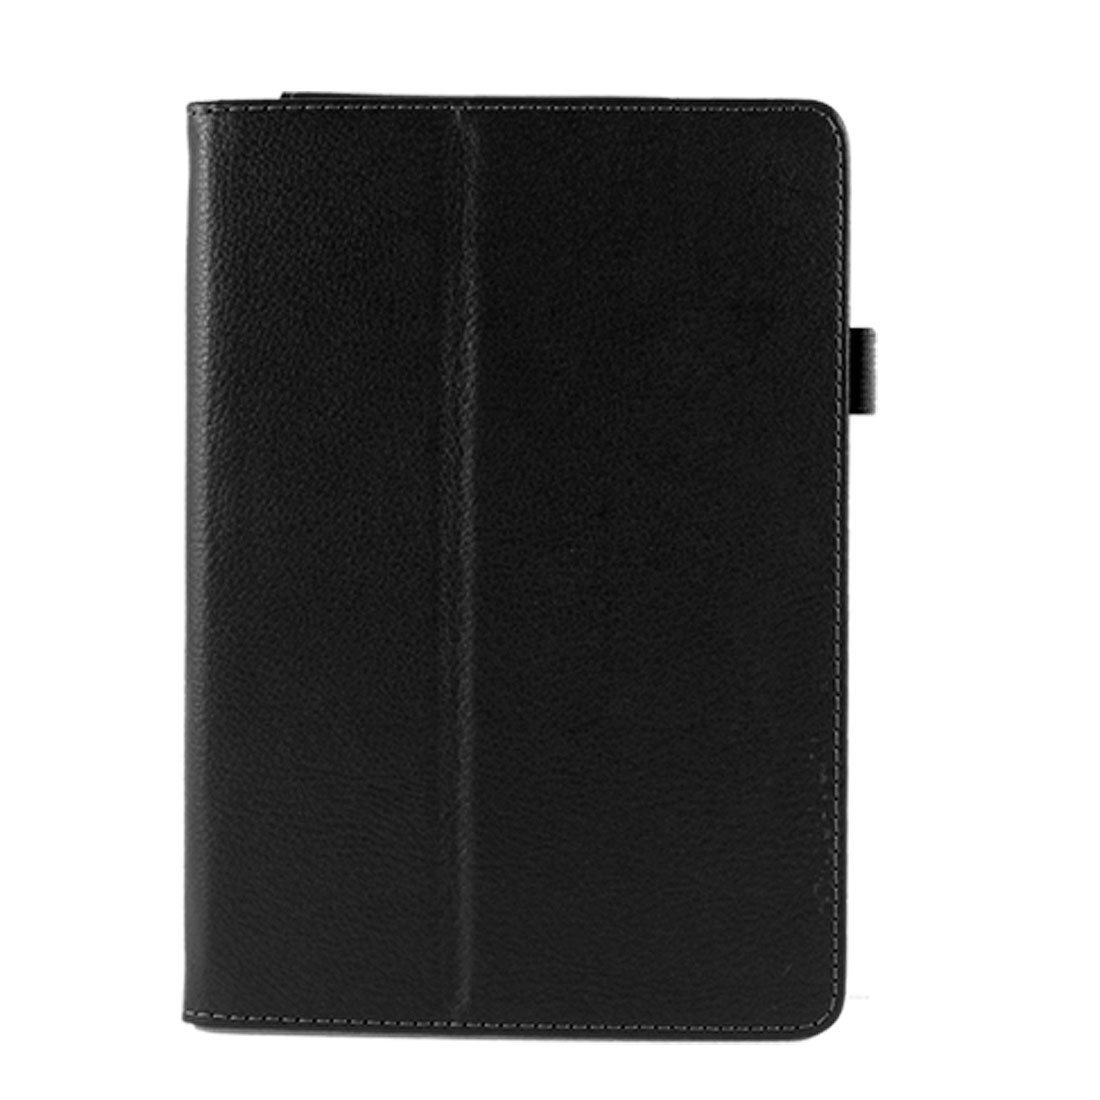 Black Faux Leather Folio Flip Case Cover for Acer Iconia Tab A1-810 A1 7.9""